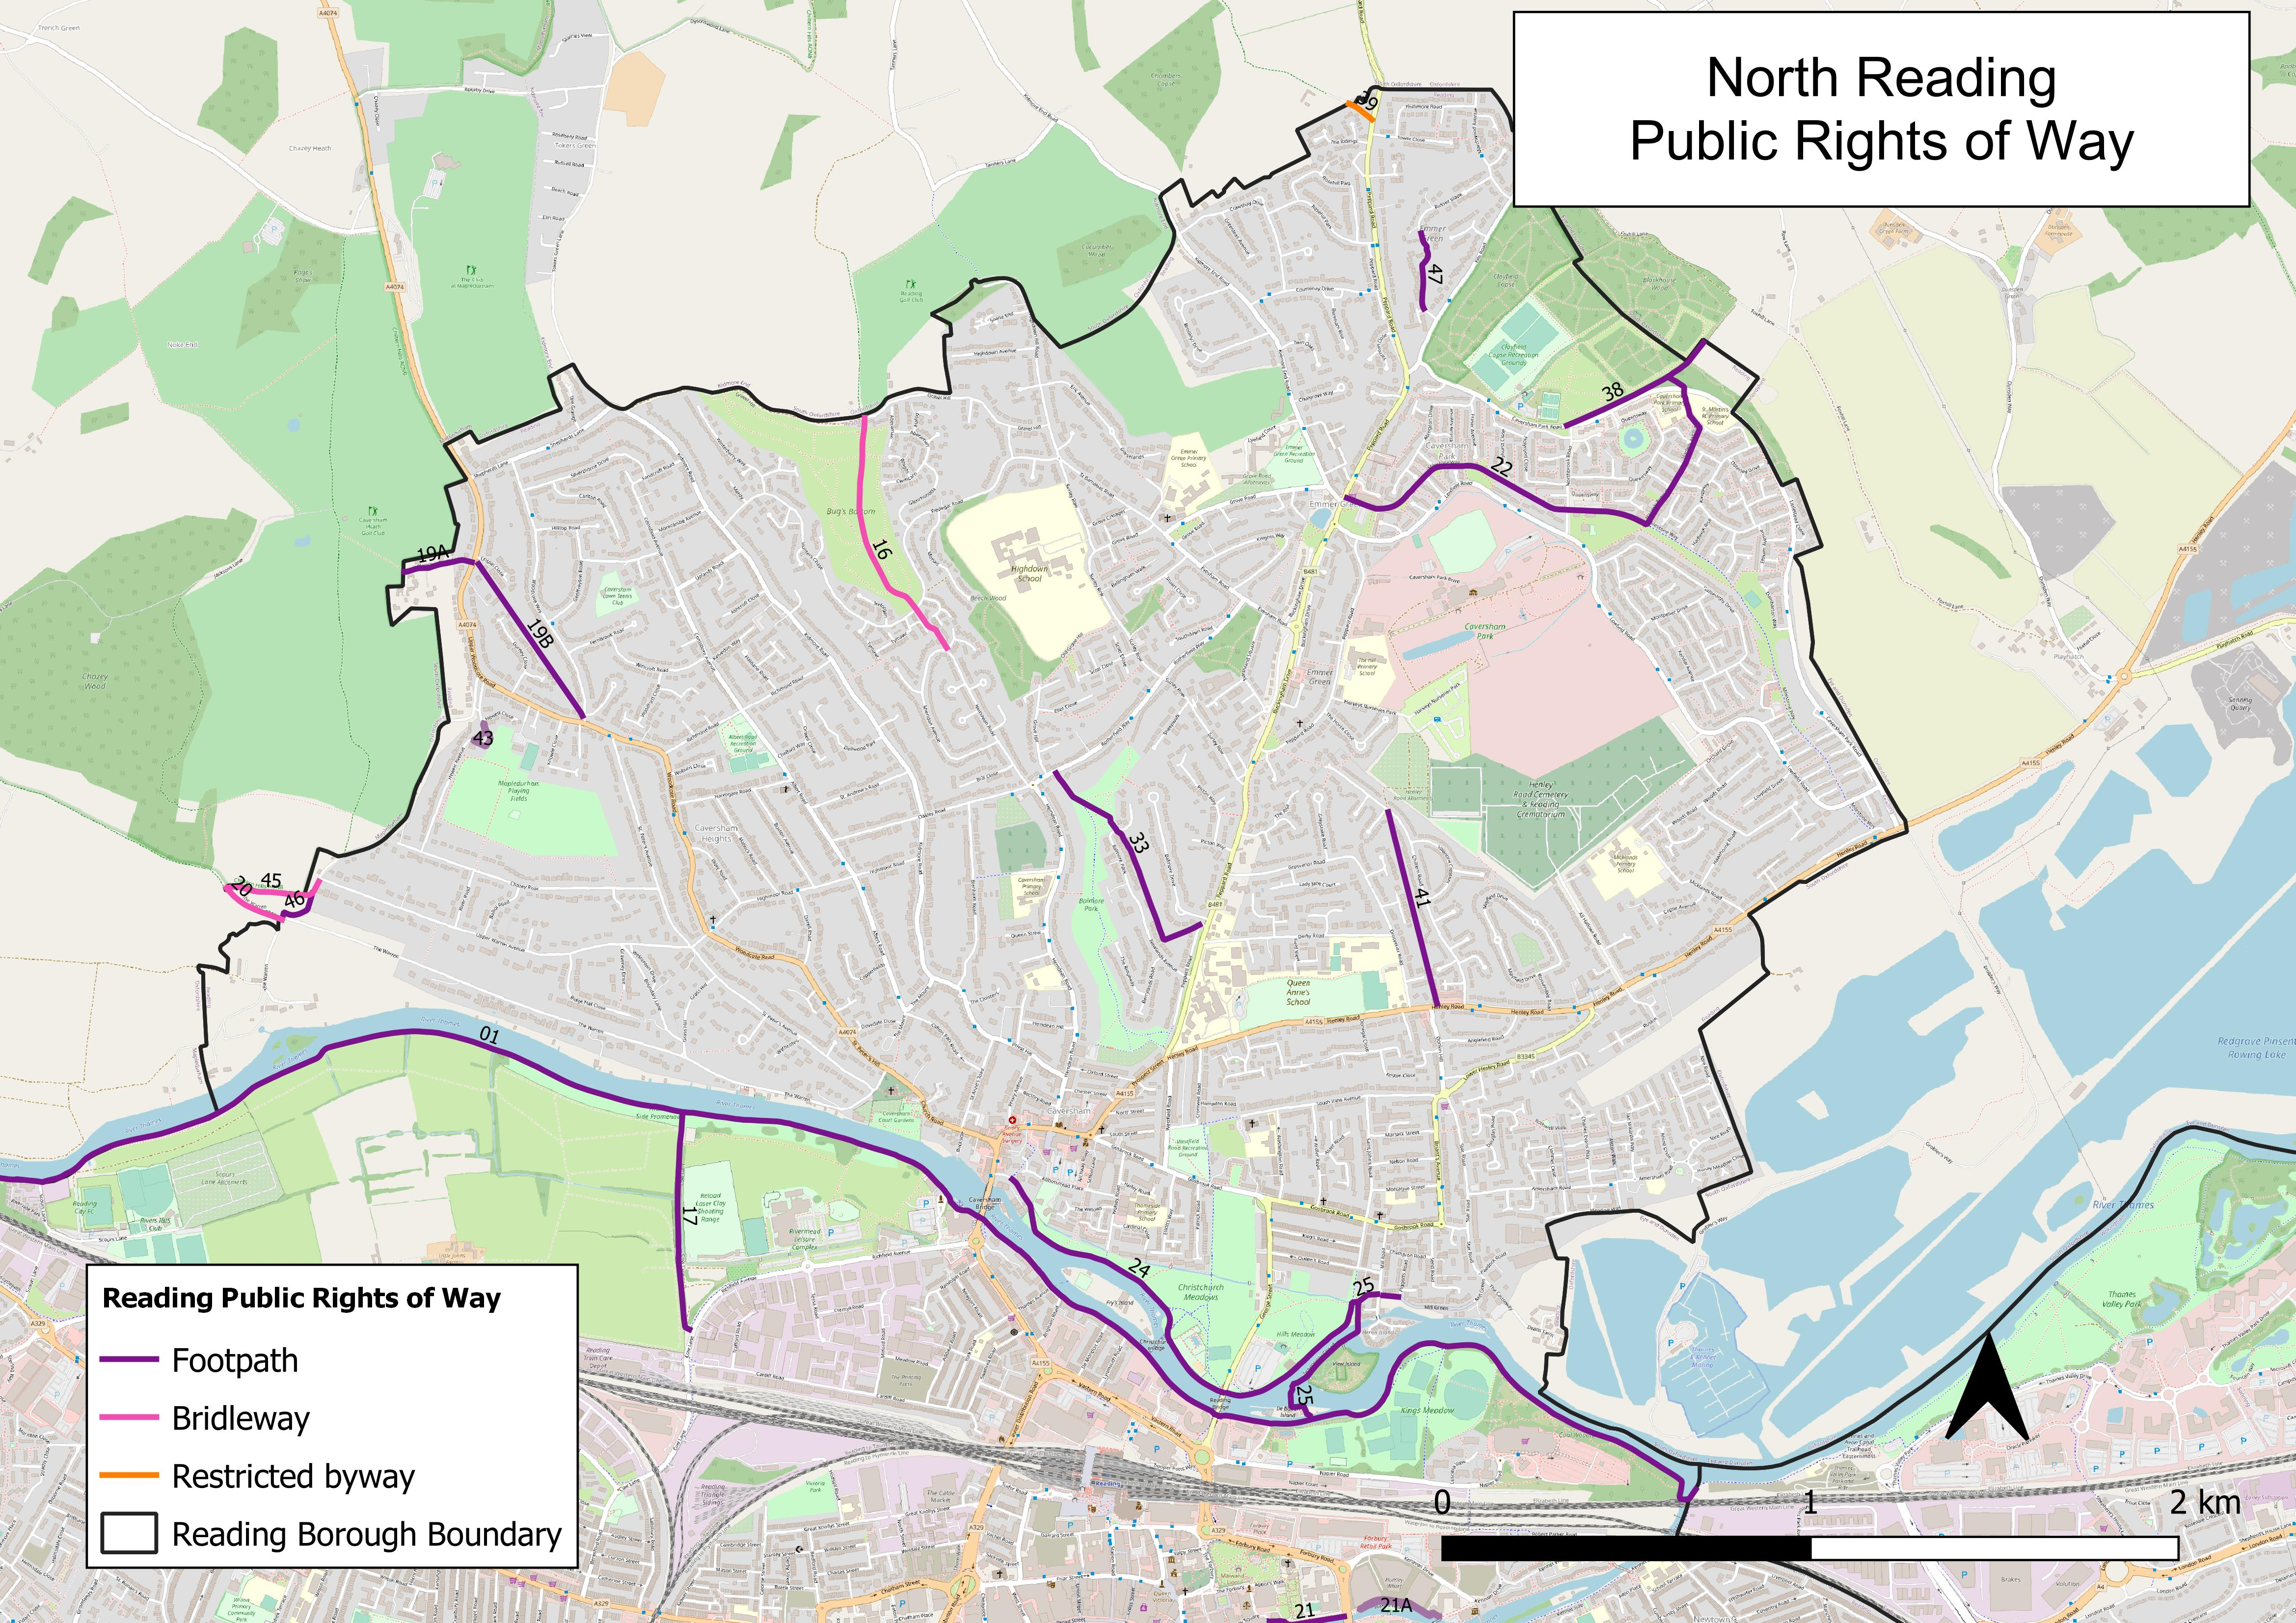 Map of public rights of way in North Reading